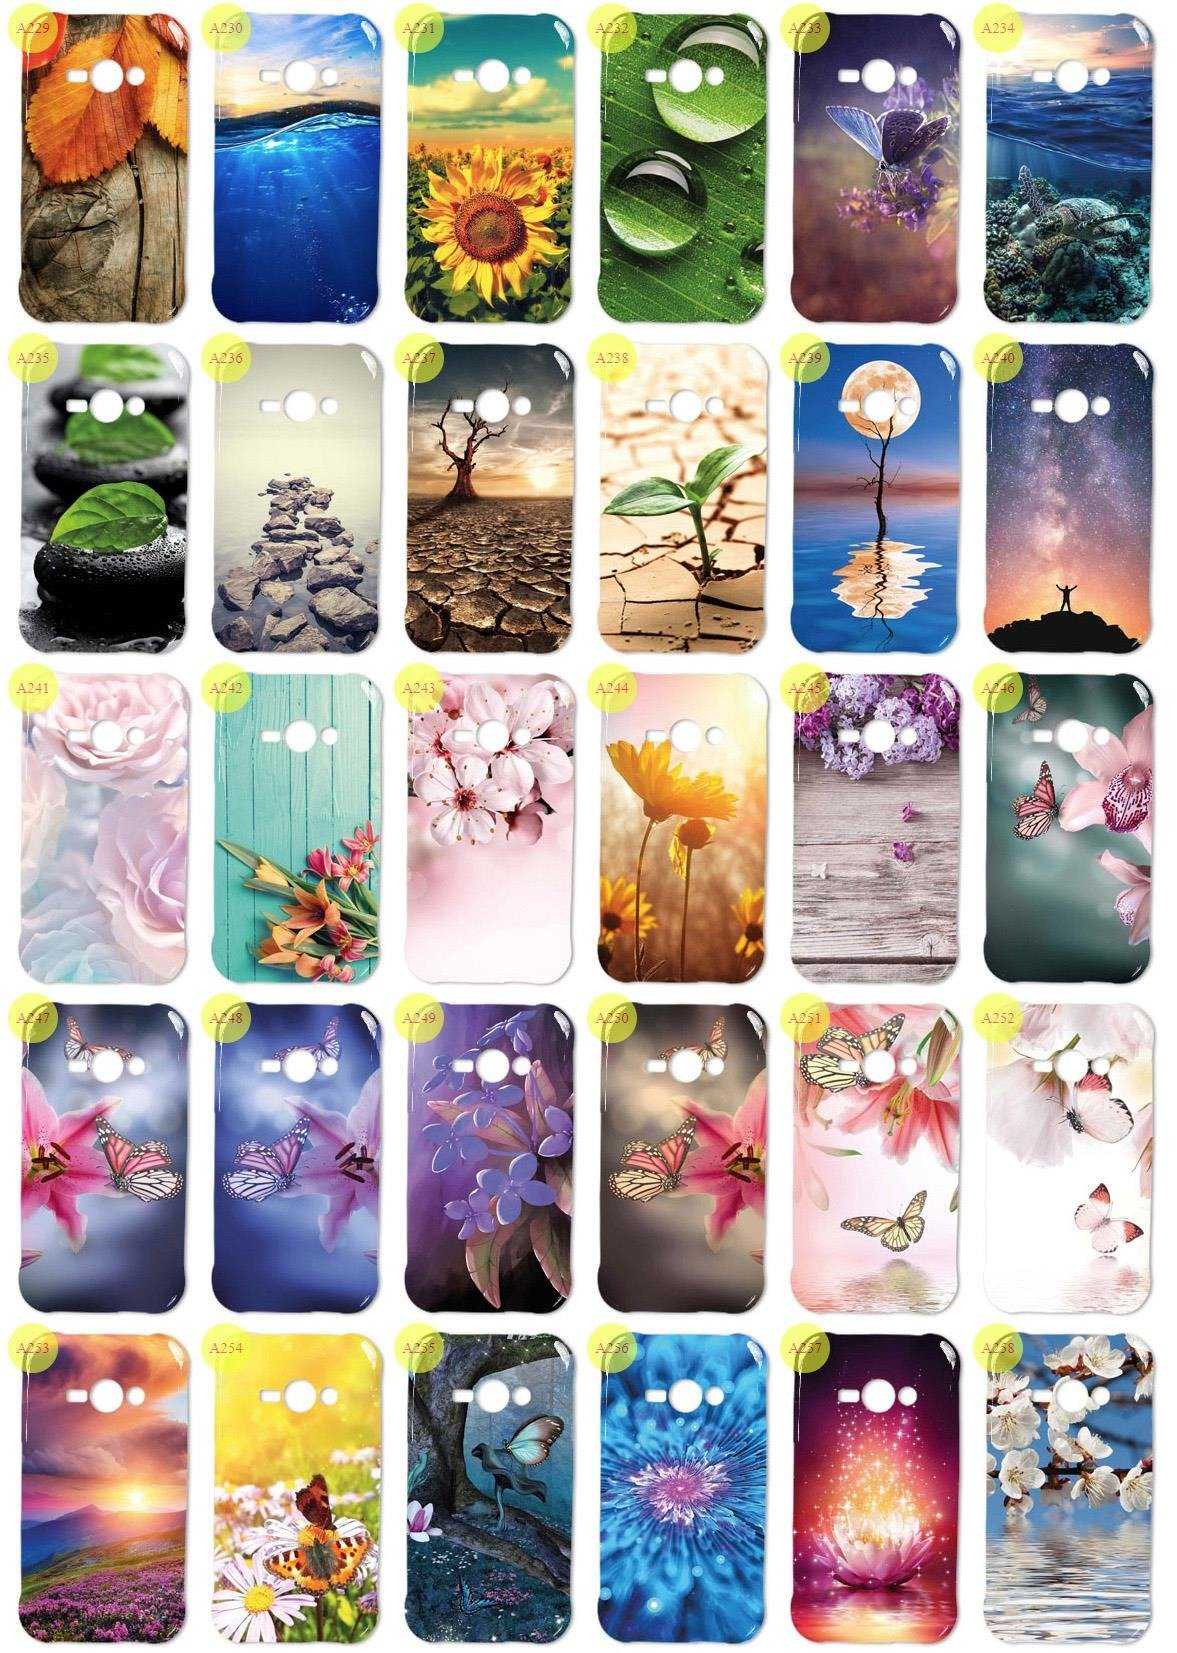 Back Case 03mm Kreatui Photocase Samsung Galaxy J1 Ace J111 Glass 2016 9h Click To Zoom